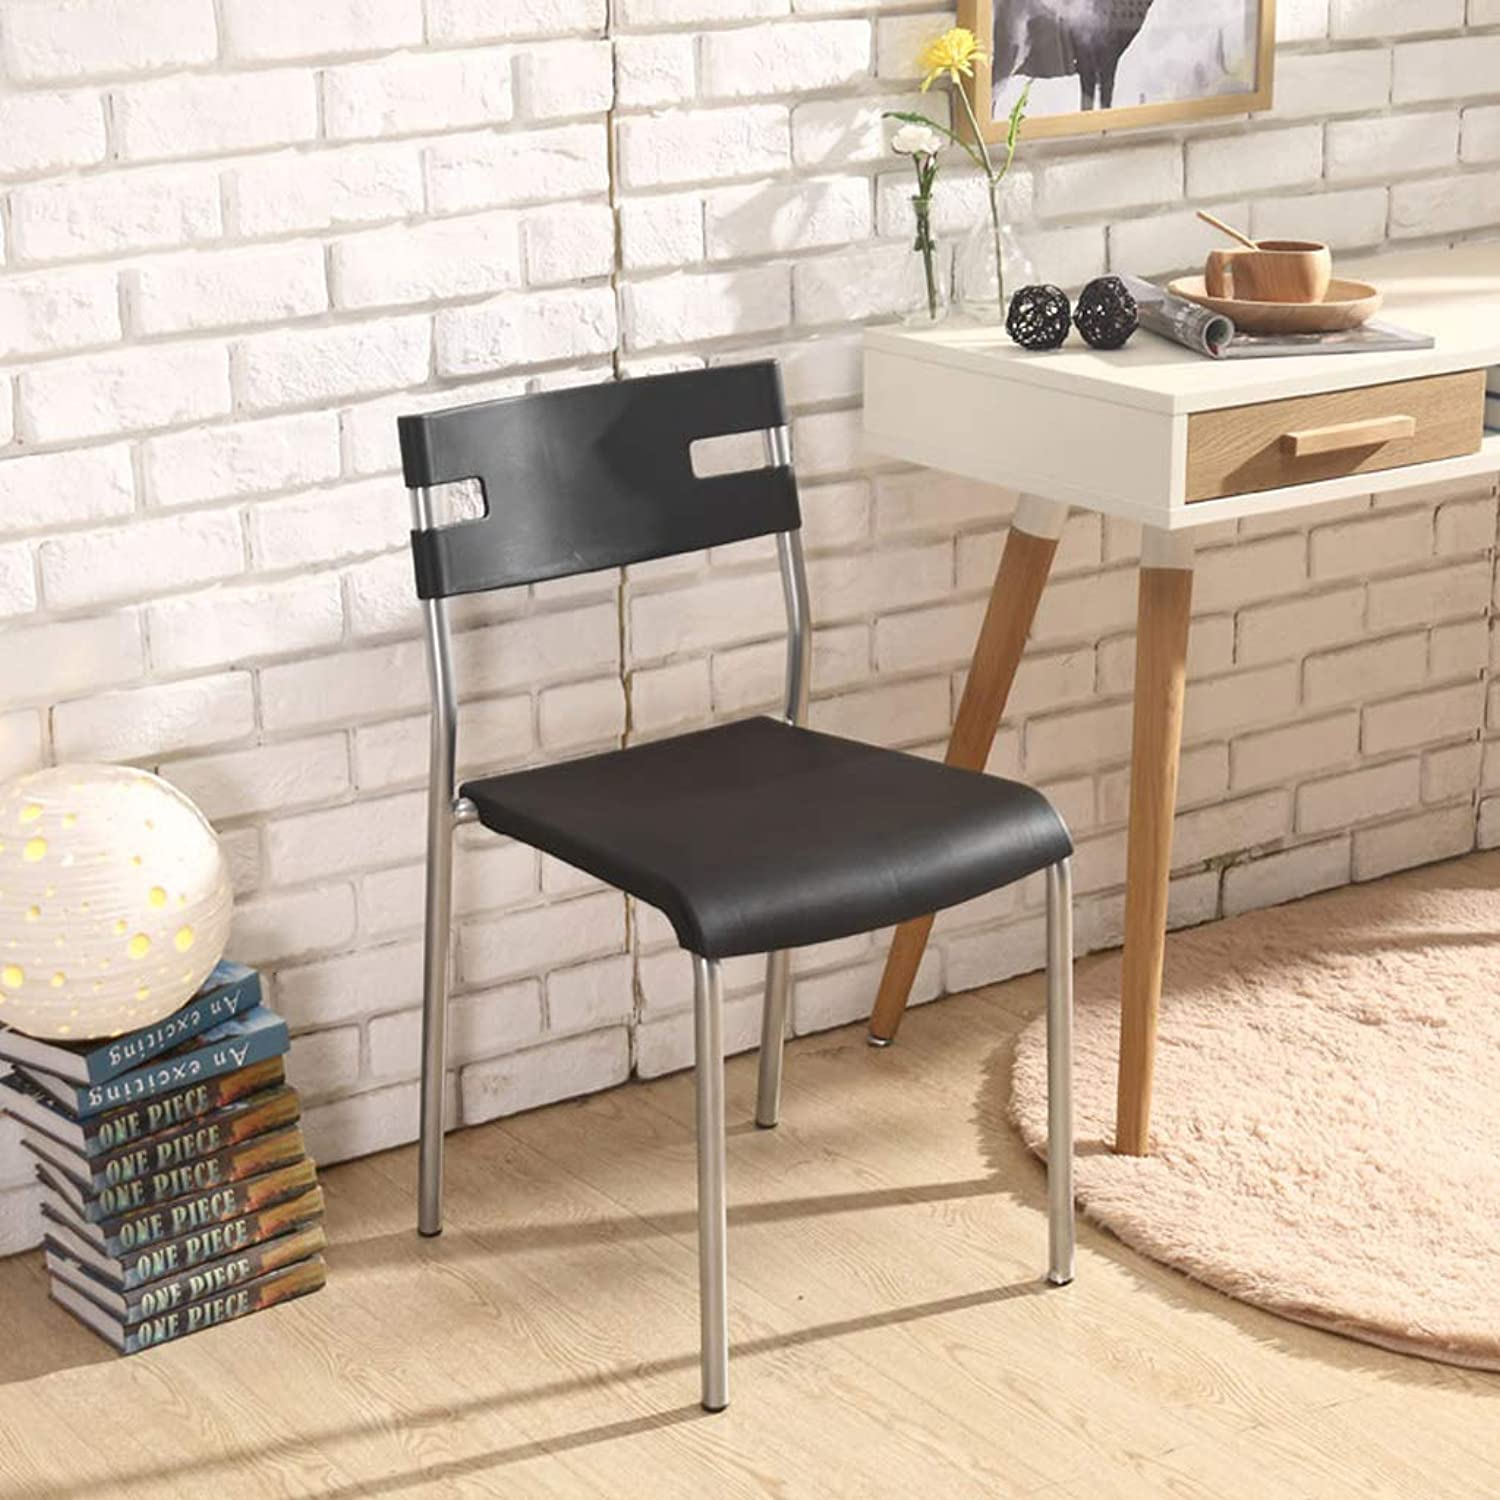 SYFO Household Plastic Chair Simple Economical Chair Computer Stool Restaurant Adult Dining Chair × 2 Stool (color   Black×2)